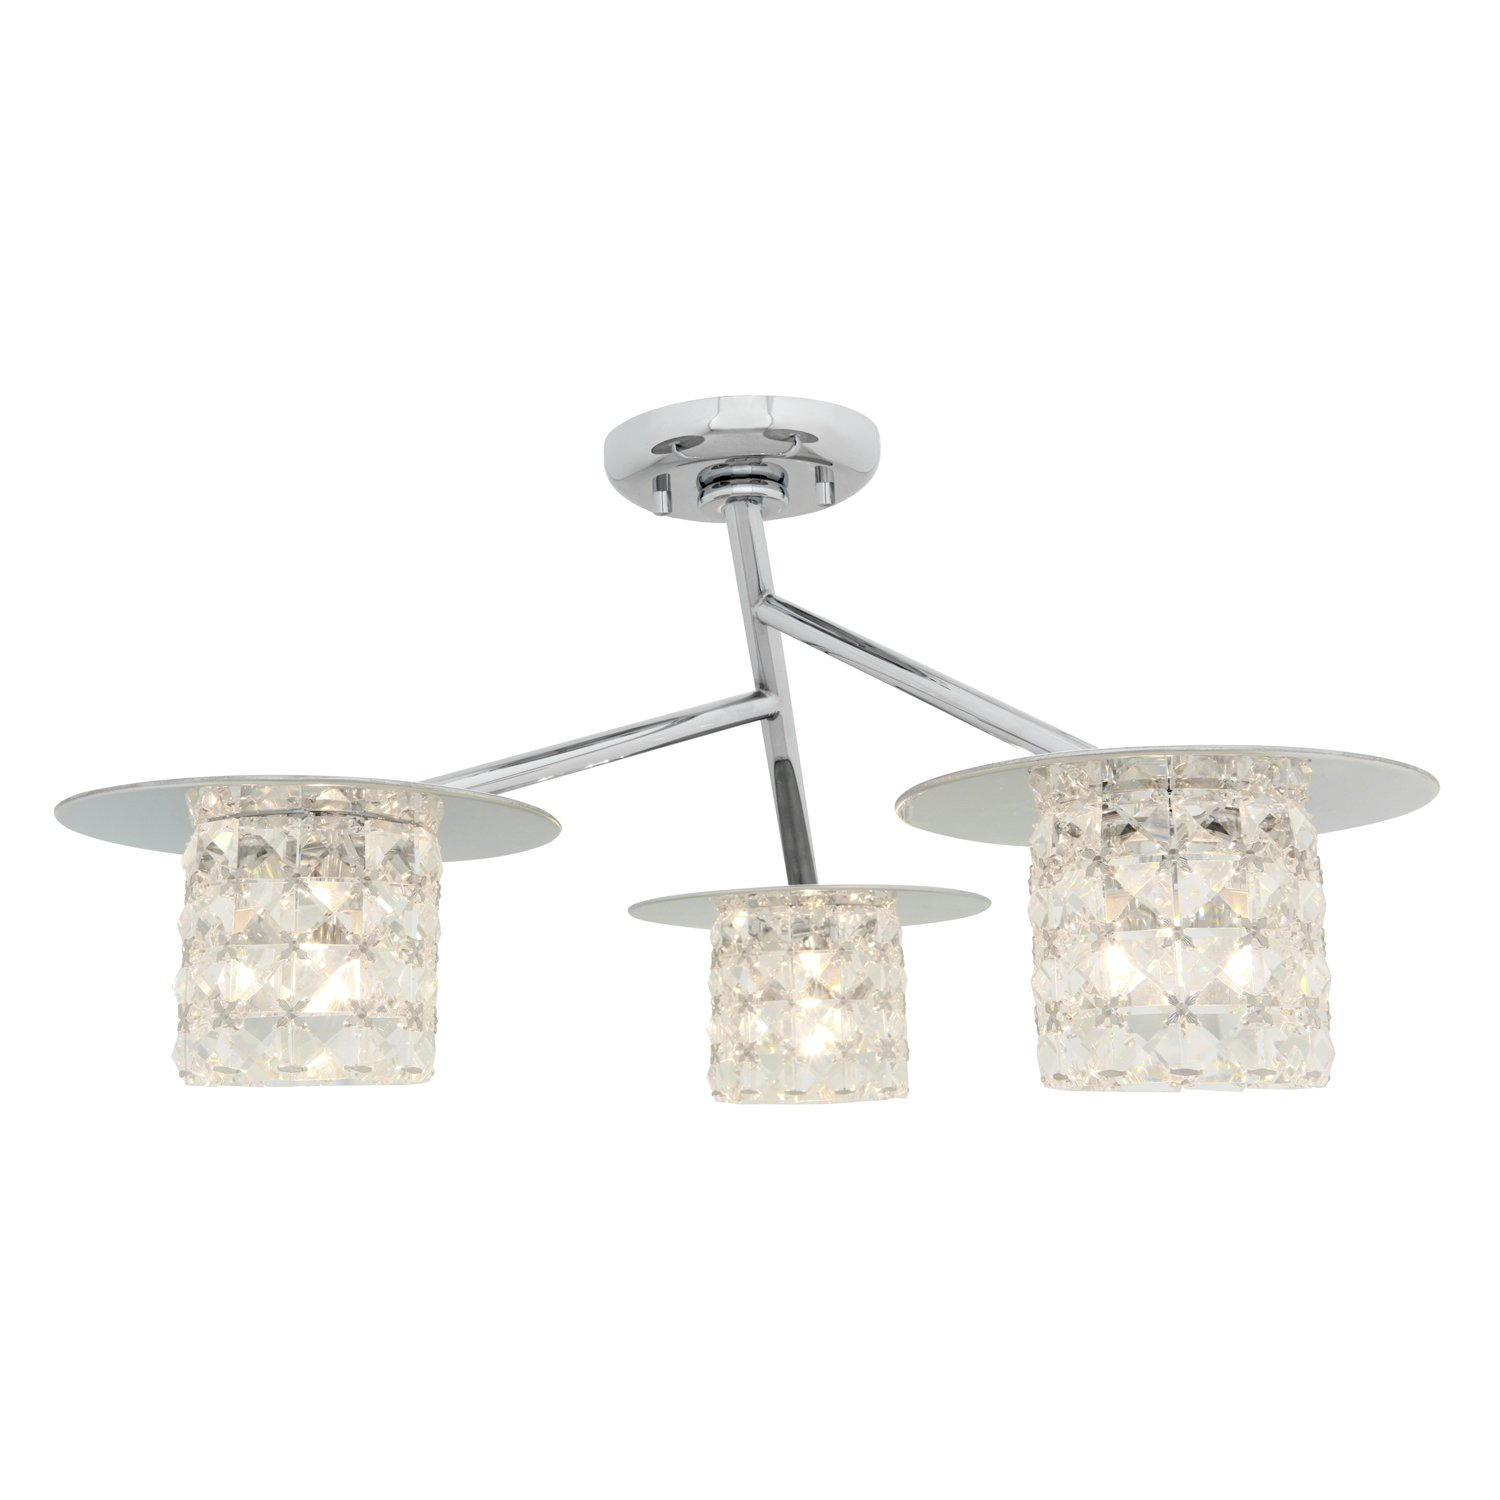 Access Lighting 23924-CH//CCL Prizm Three Light Semi Flush with Clear Crystal Glass Shade Chrome Finish